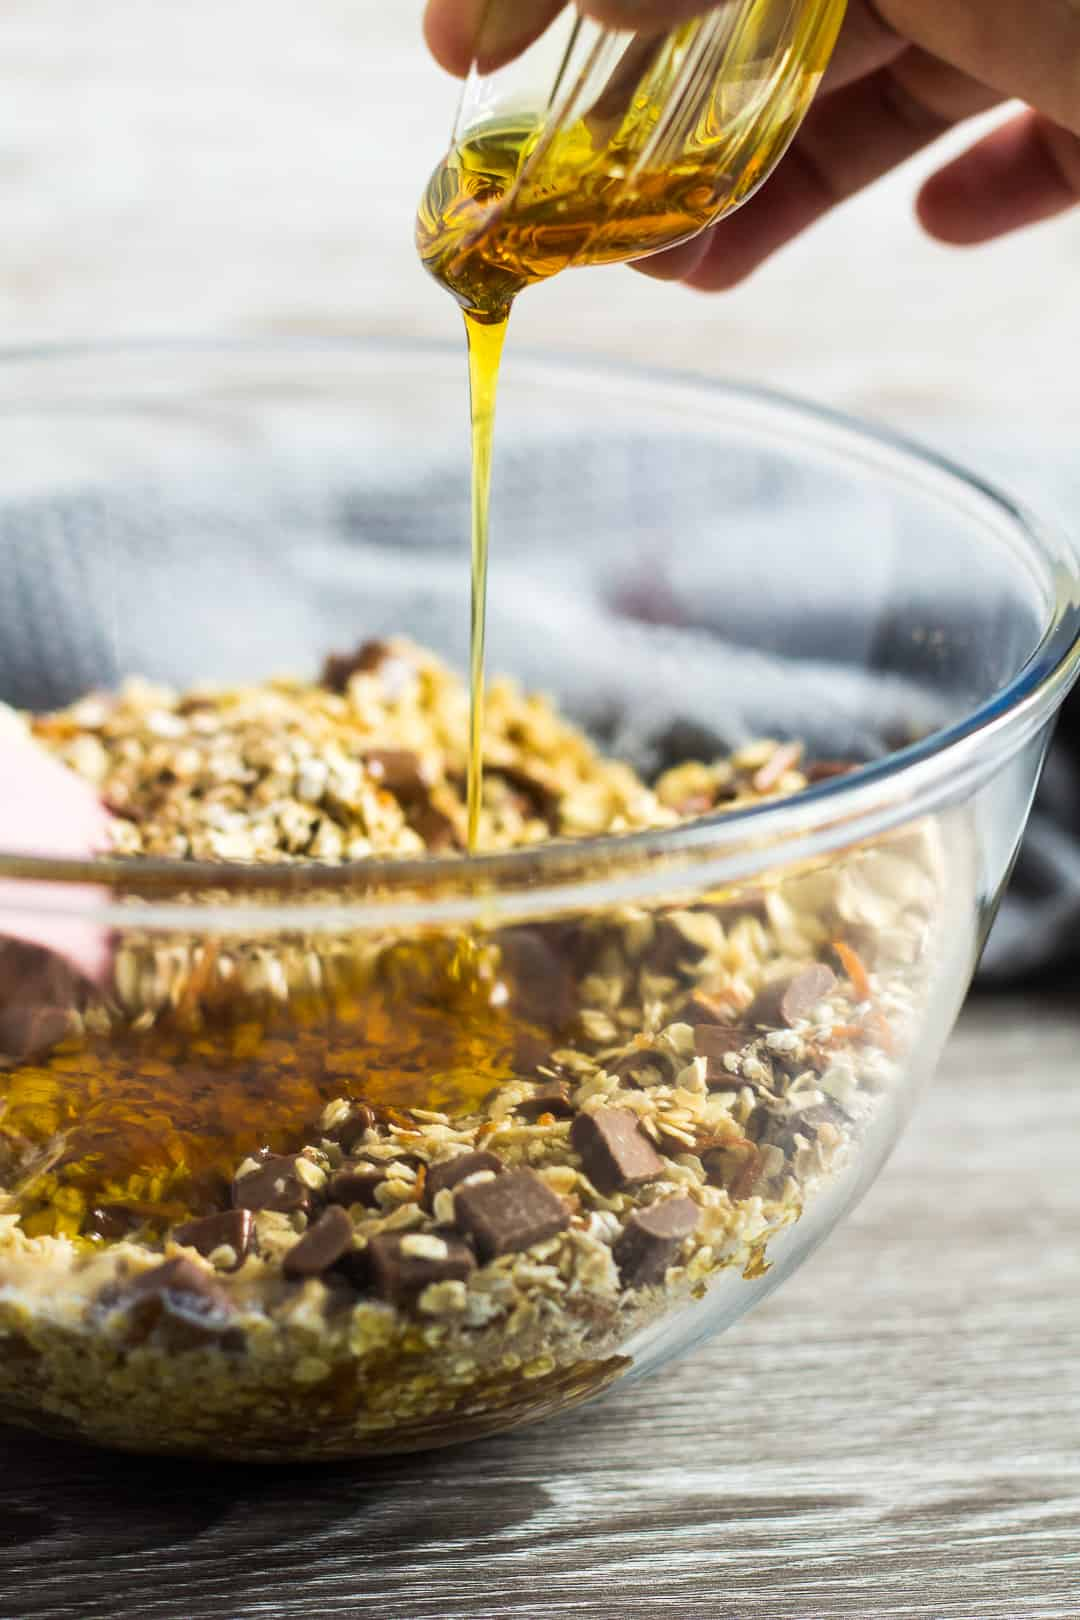 Golden syrup being poured into a glass mixing bowl of ingredients for Hot Cross Bun Spiced Flapjacks.